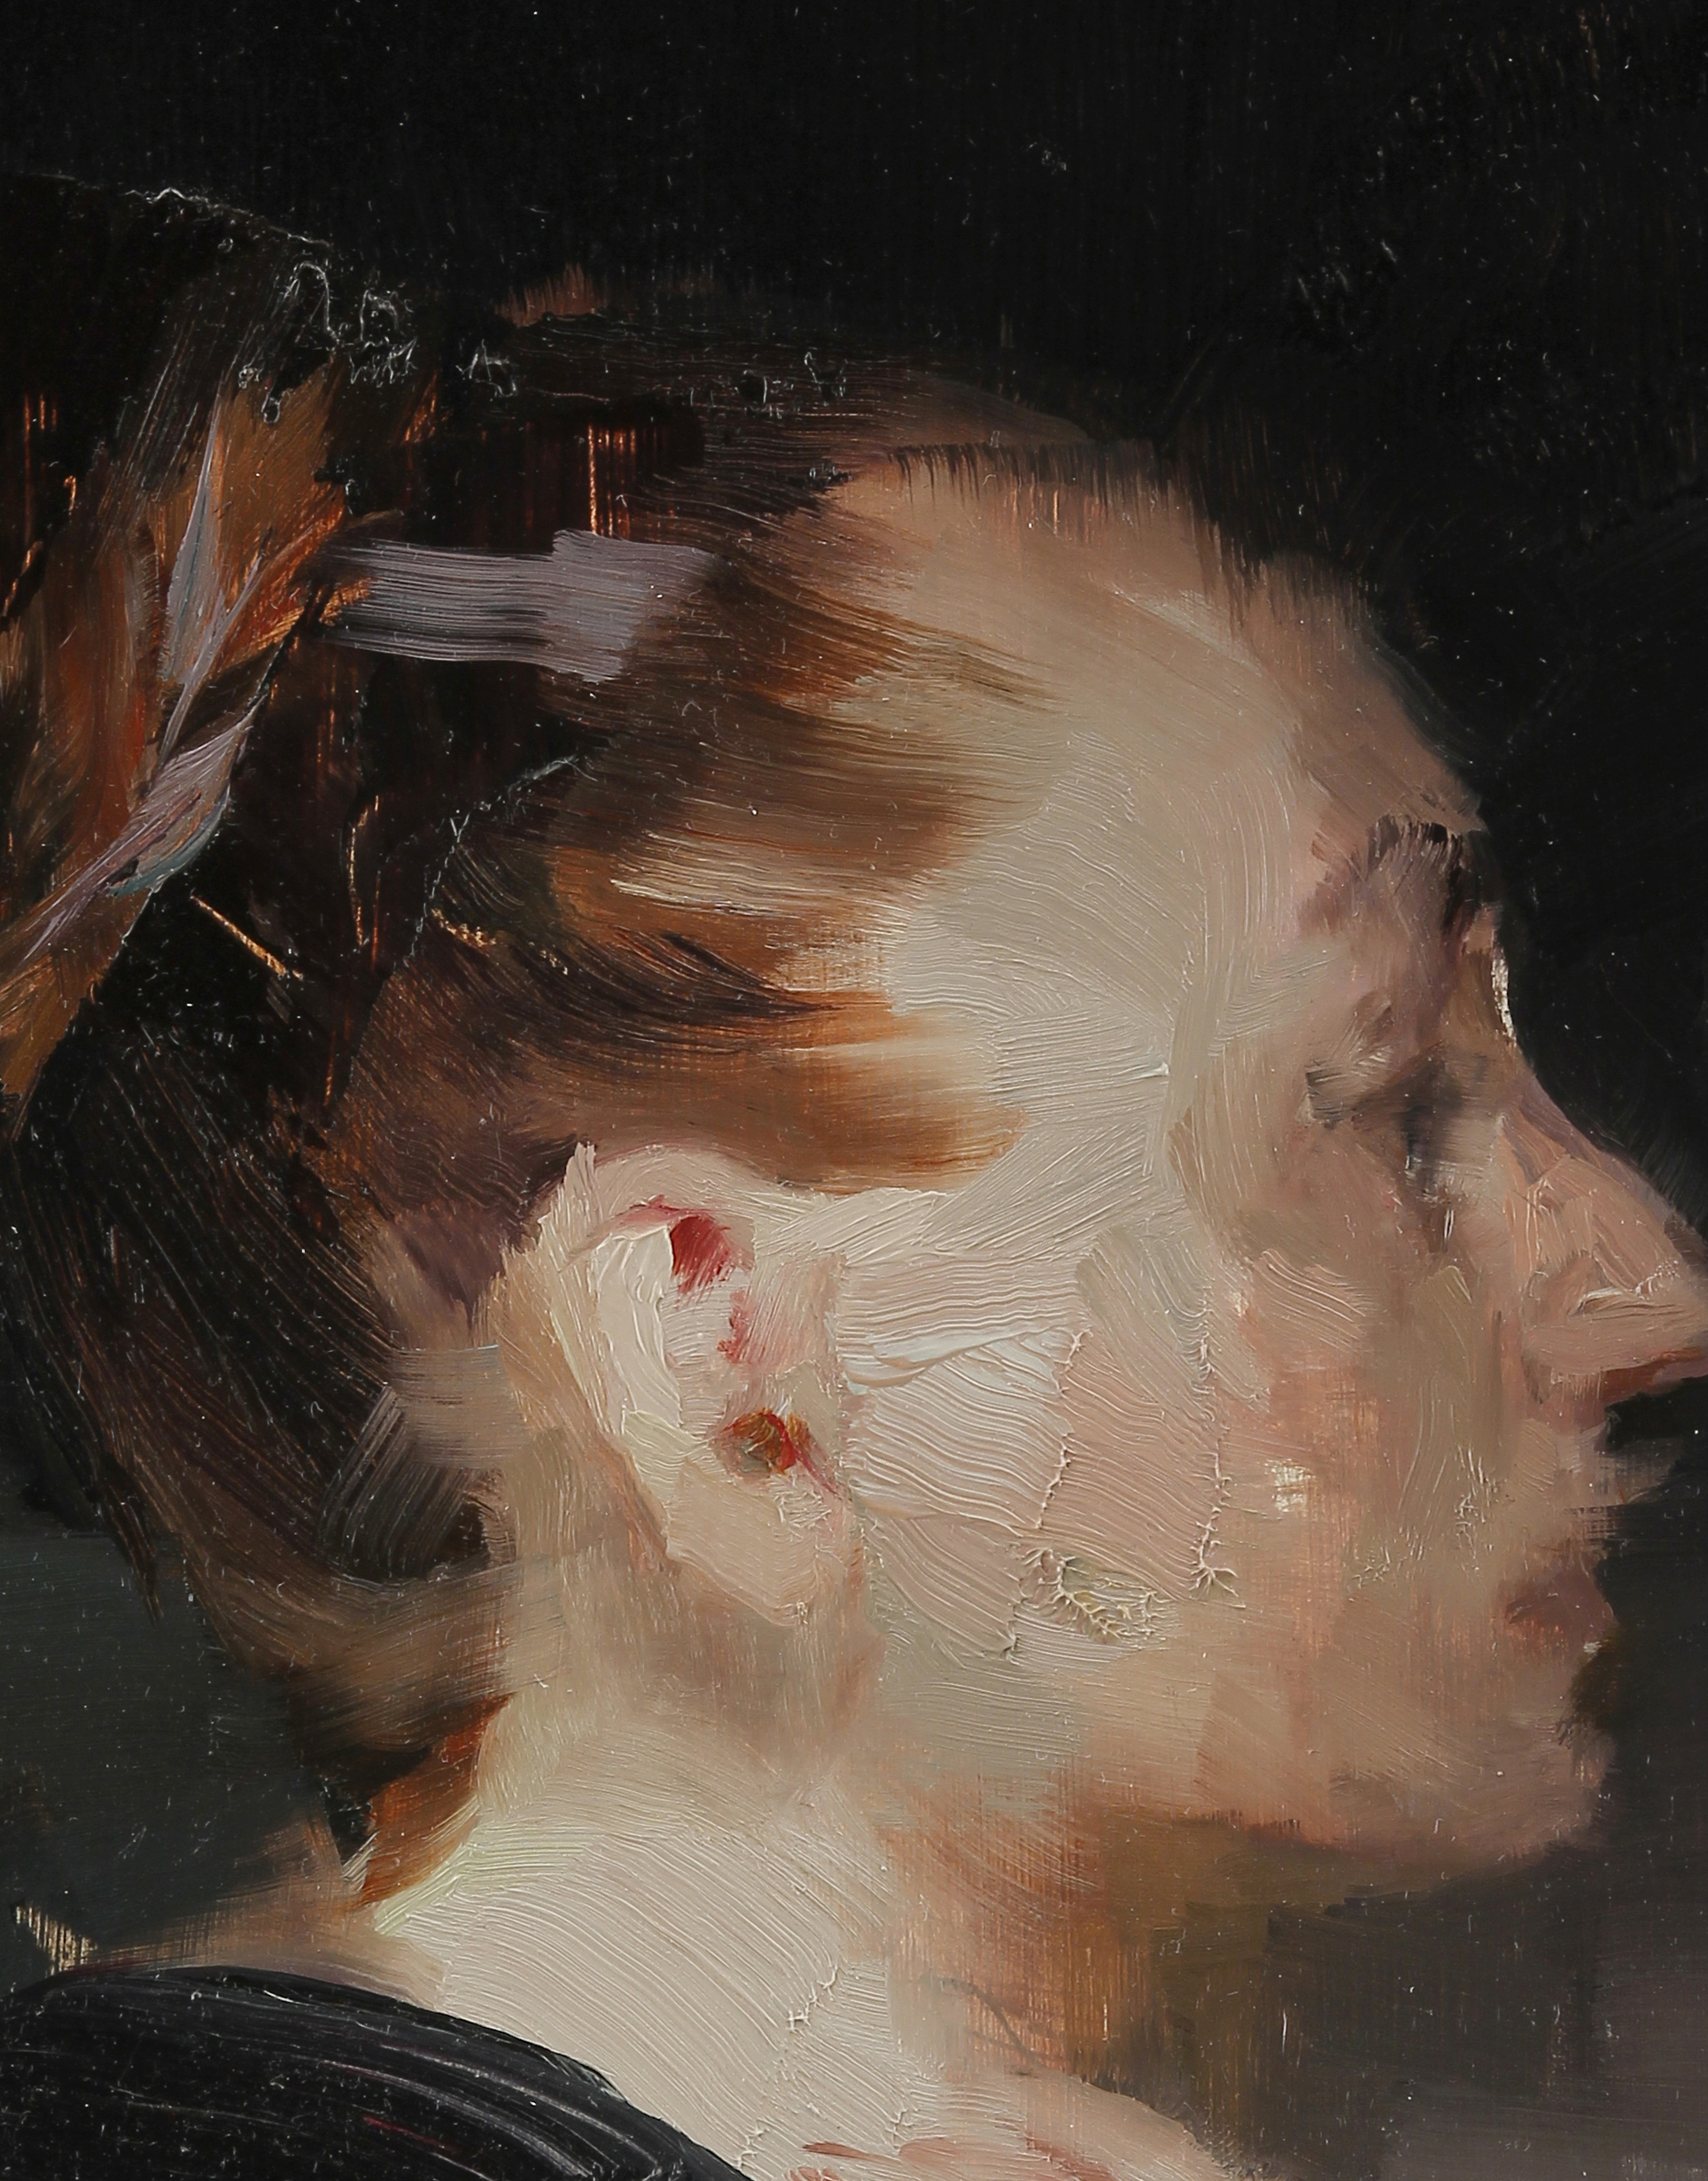 Woman in profile (detail), 12 X 9 inches, oil on panel, framed